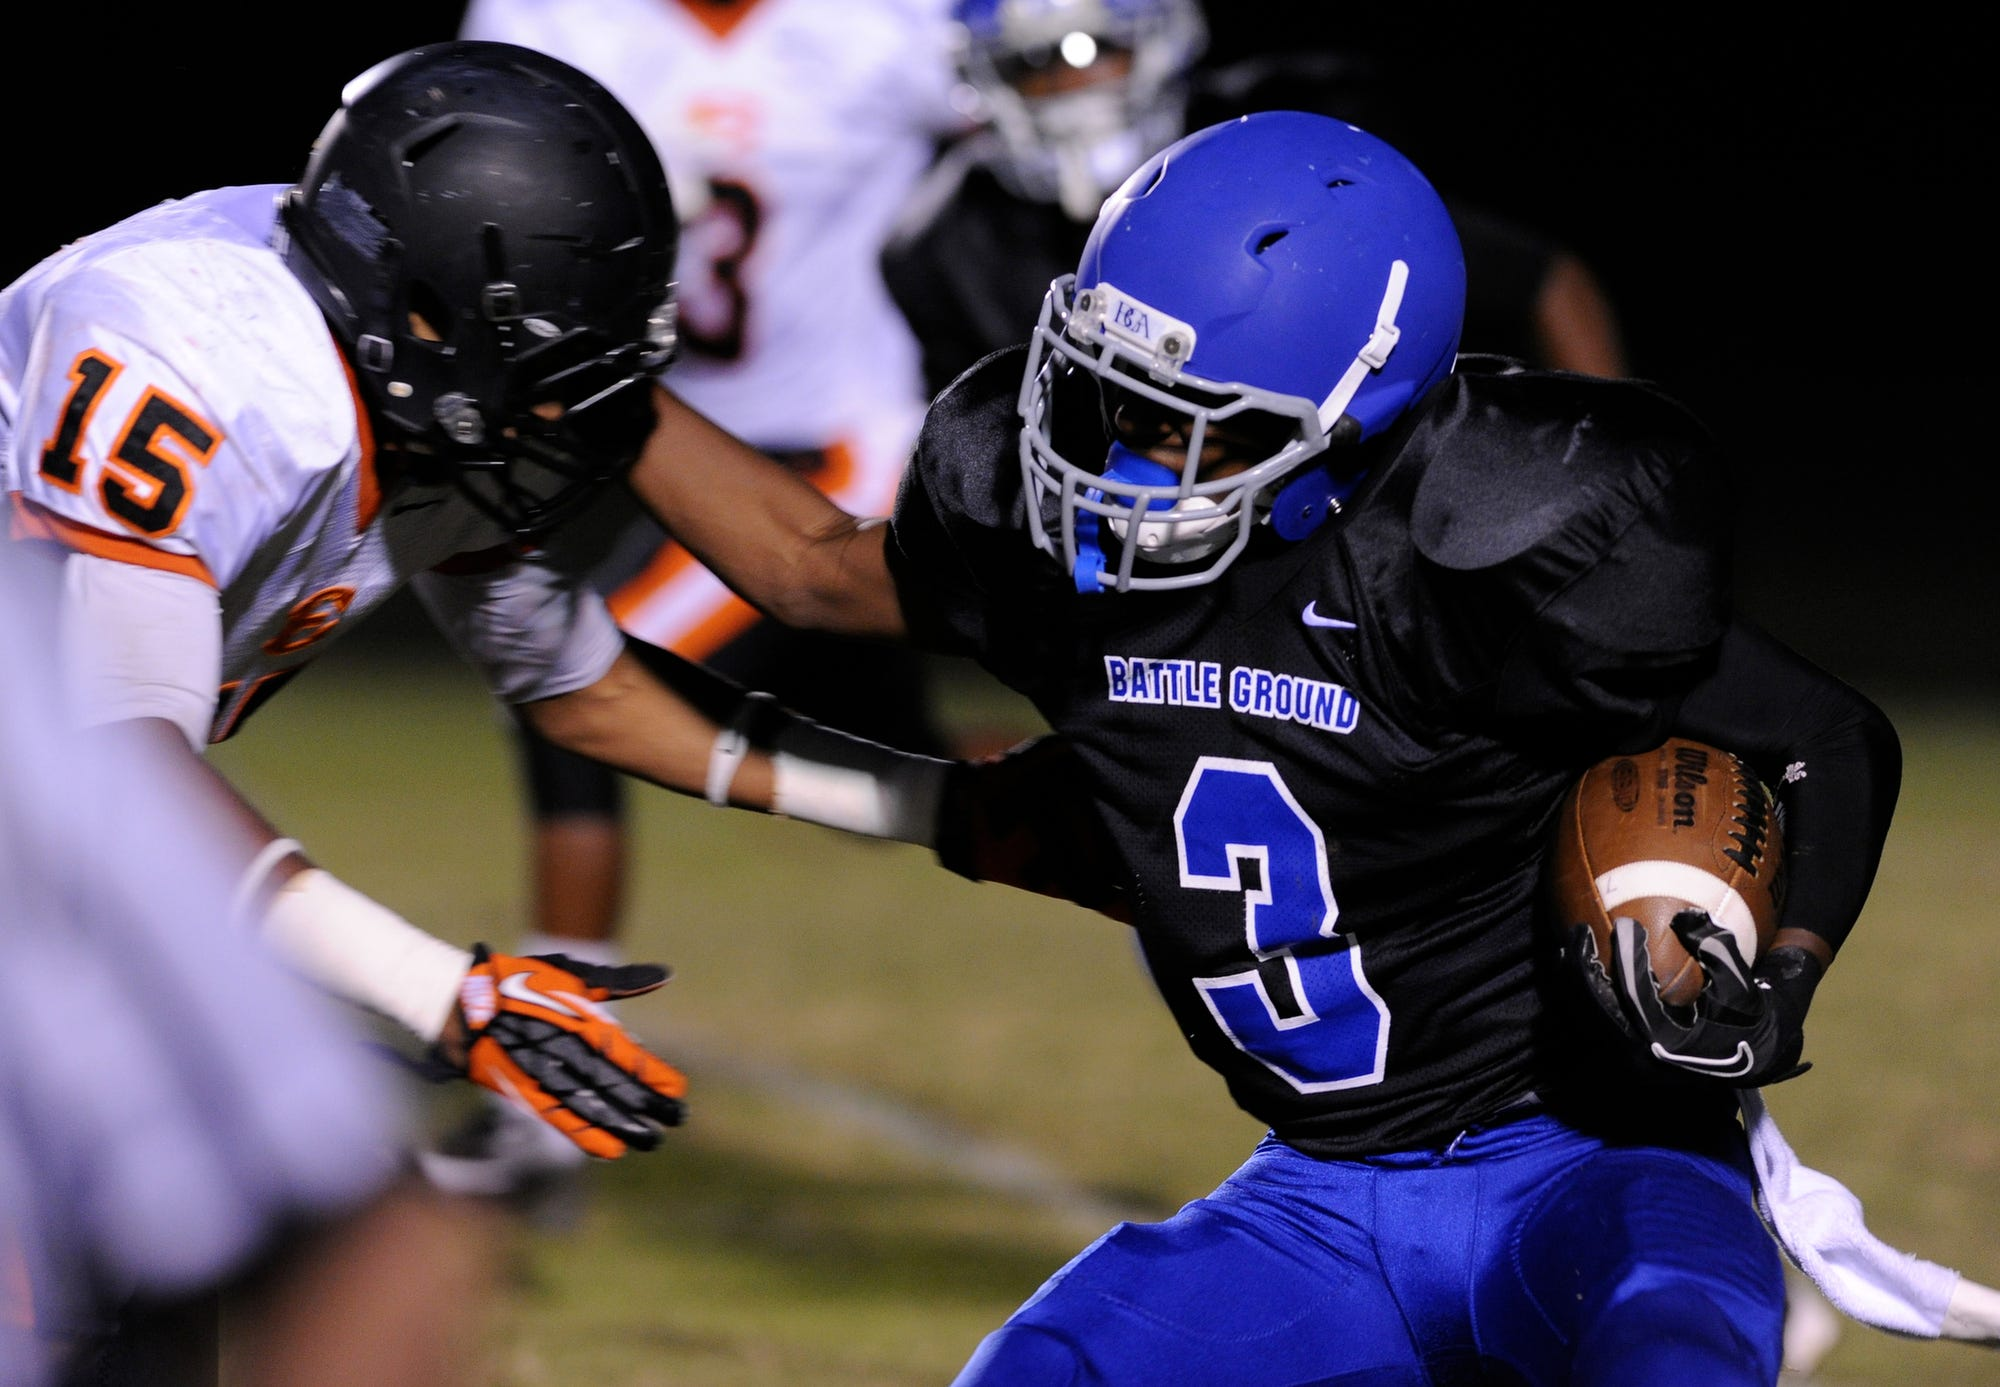 BGA's Ronald Cleveland will be one of the players to watch in Division II-A this season.